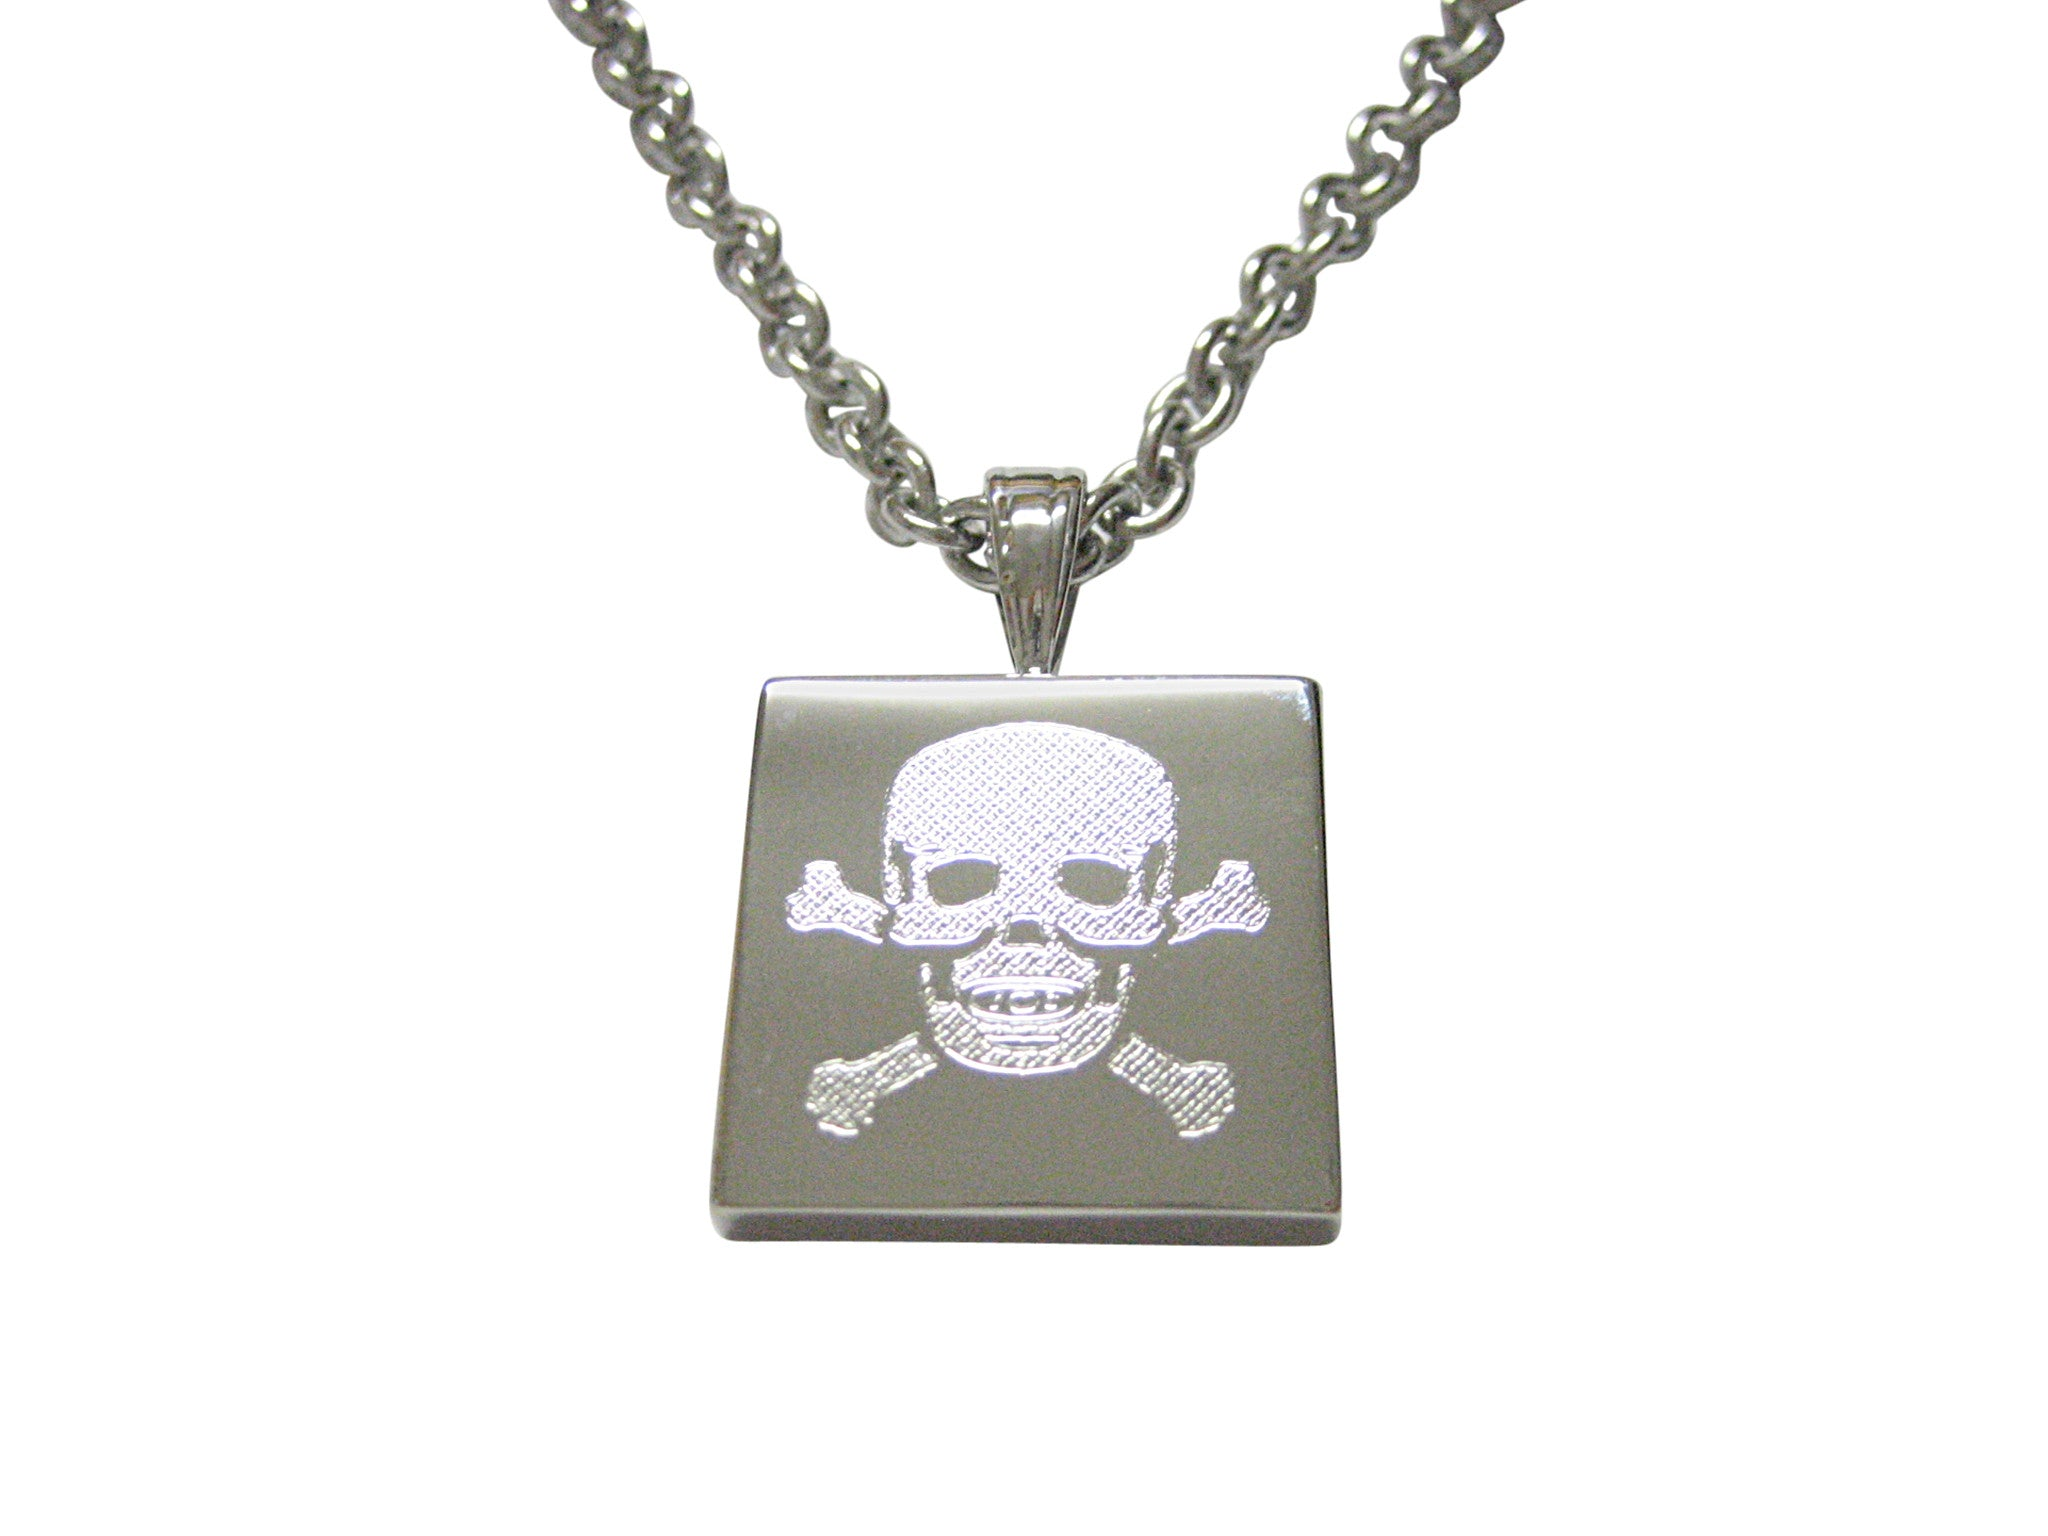 Silver Toned Etched Skull and Crossbones Pendant Necklace